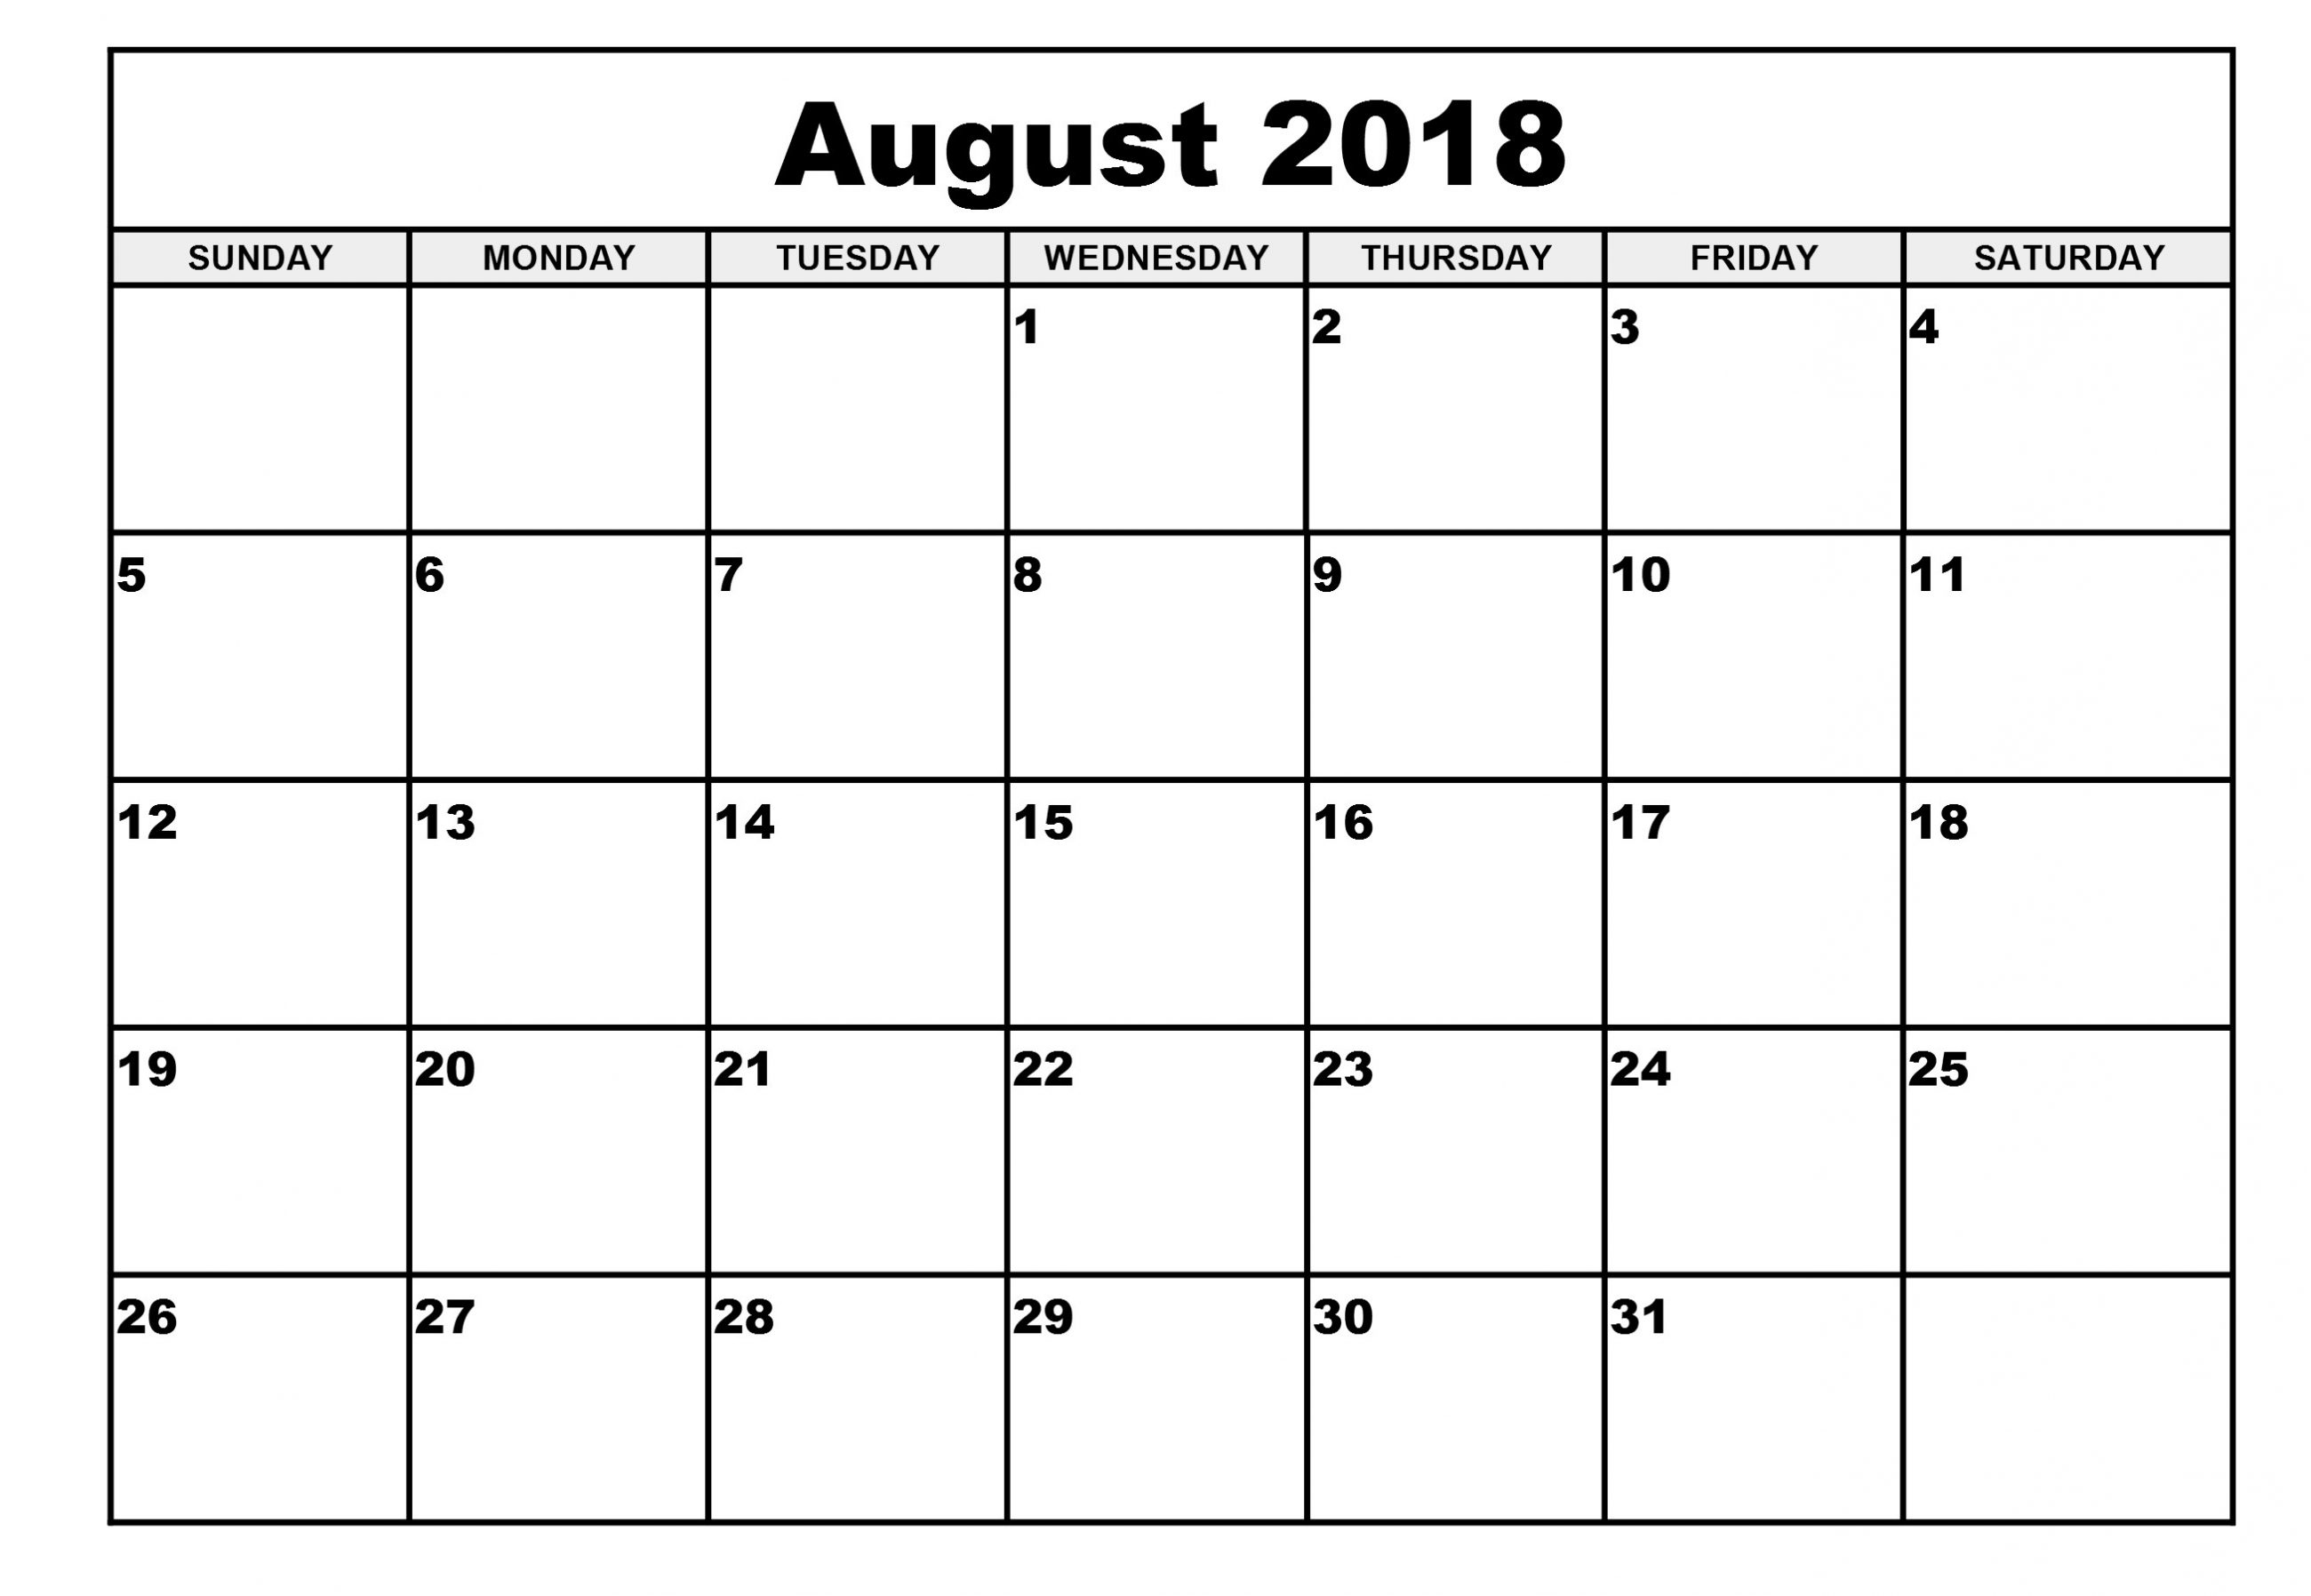 august 2018 calendar pdf roho4sensesco Calendar August 2018 Uk List erdferdf